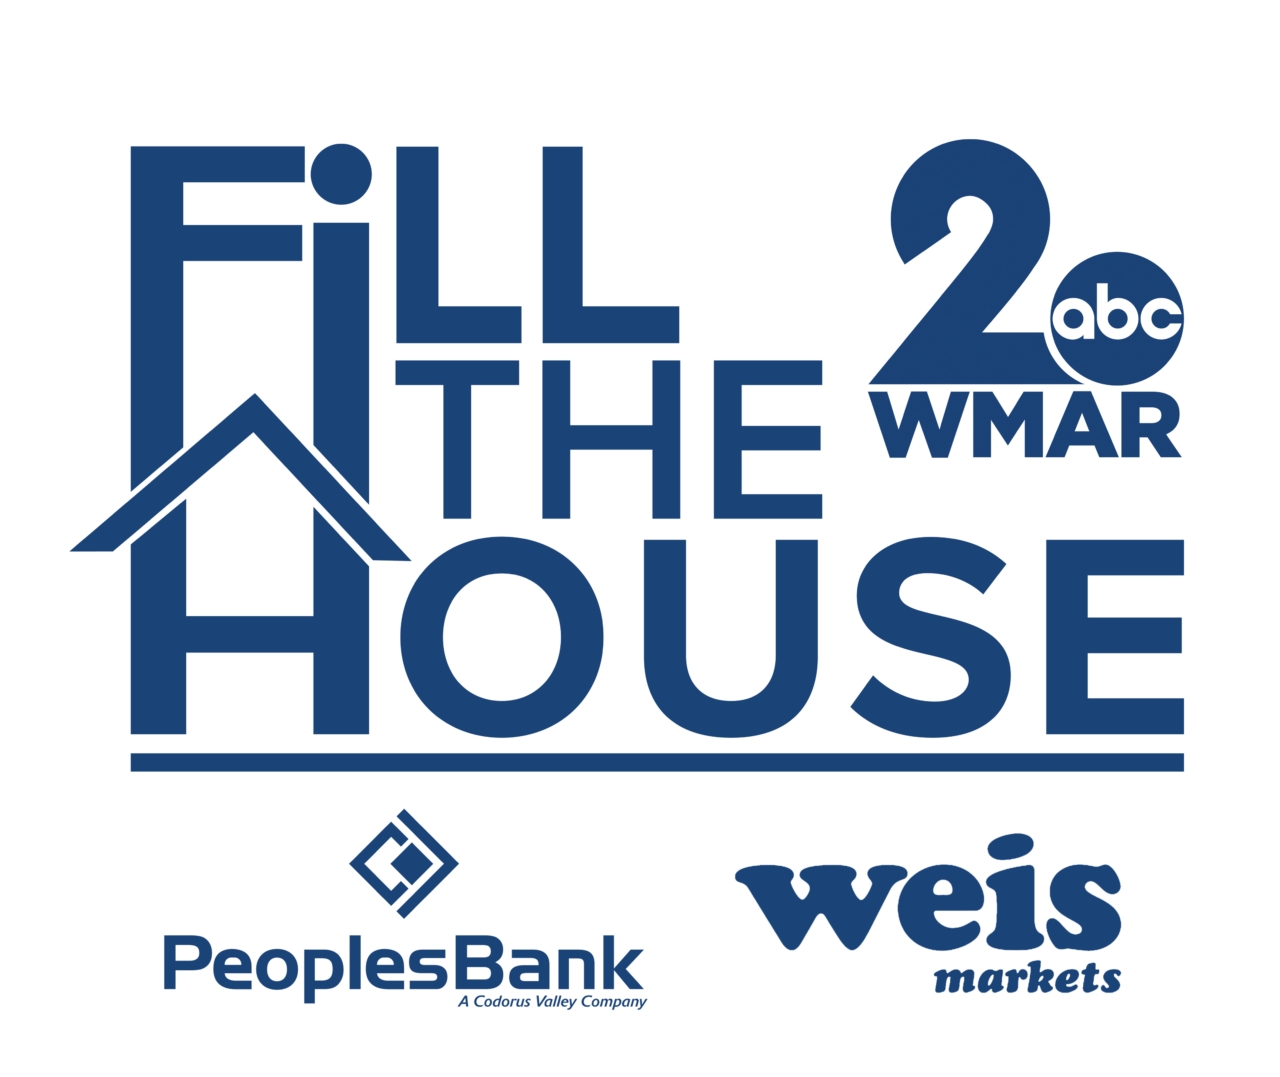 Fill the House Logo